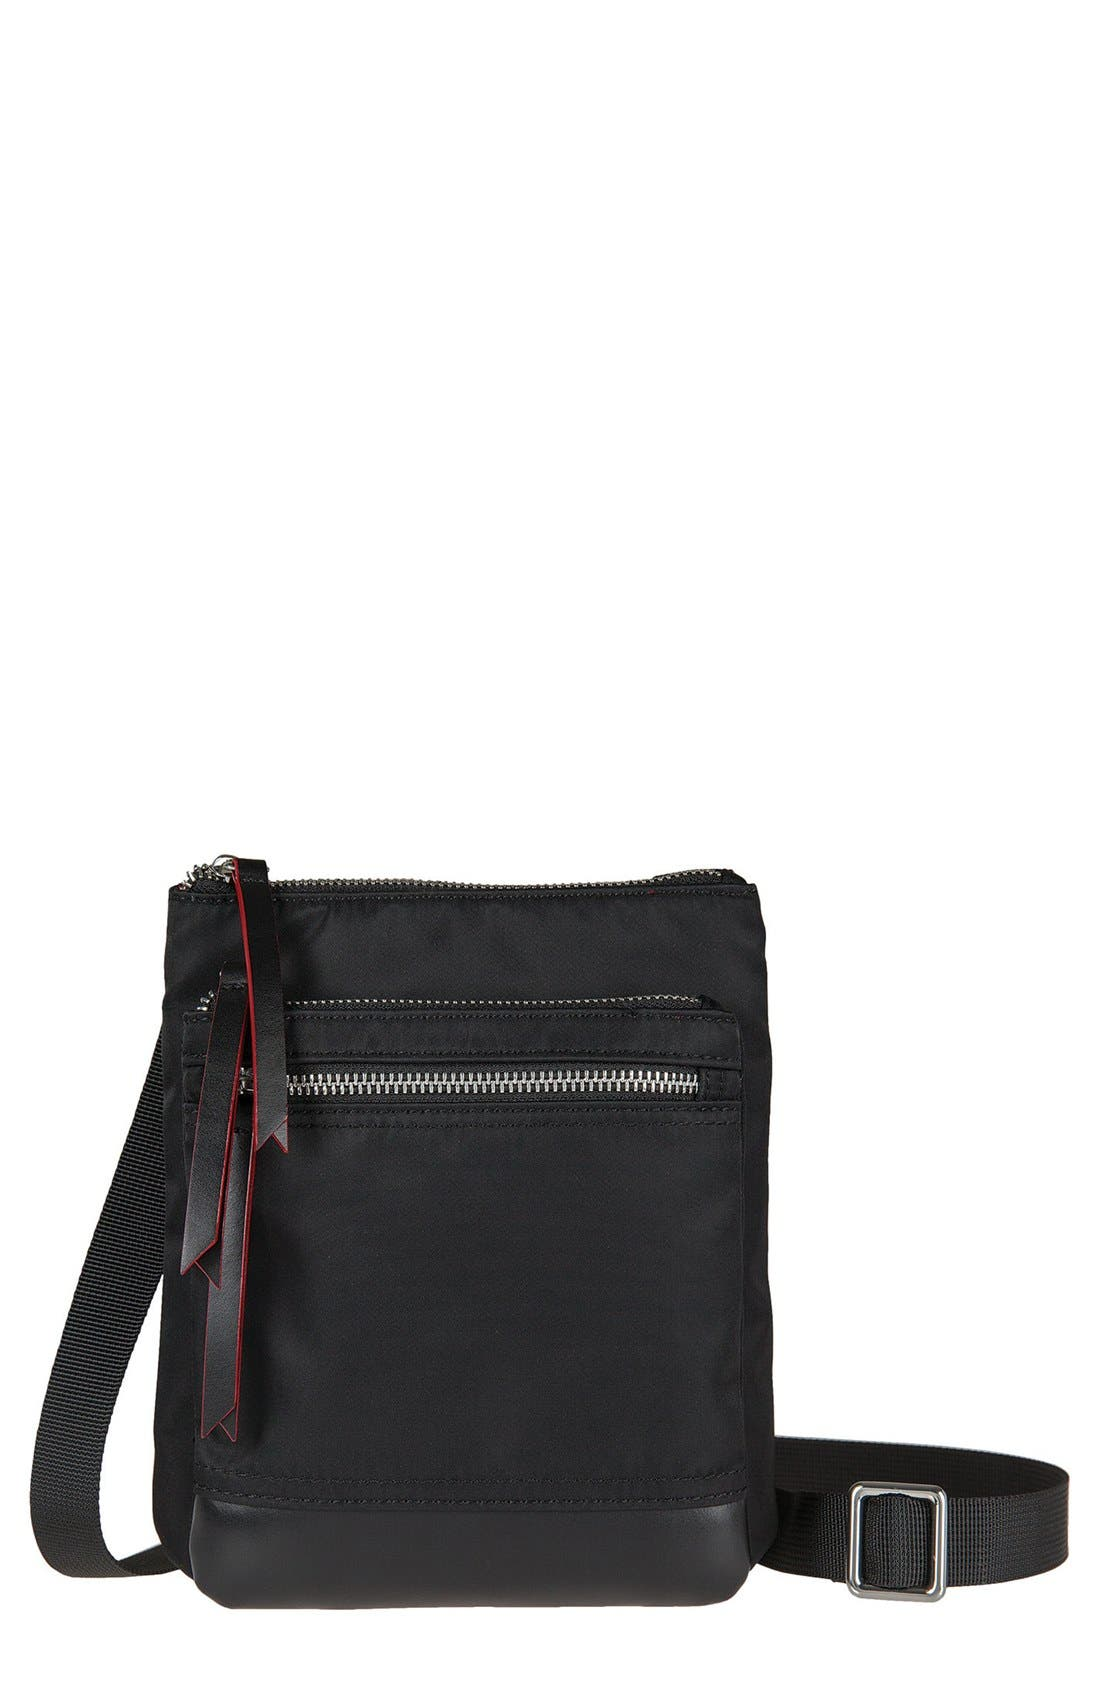 LODIS Los Angeles Zora RFID Nylon & Leather Crossbody Bag